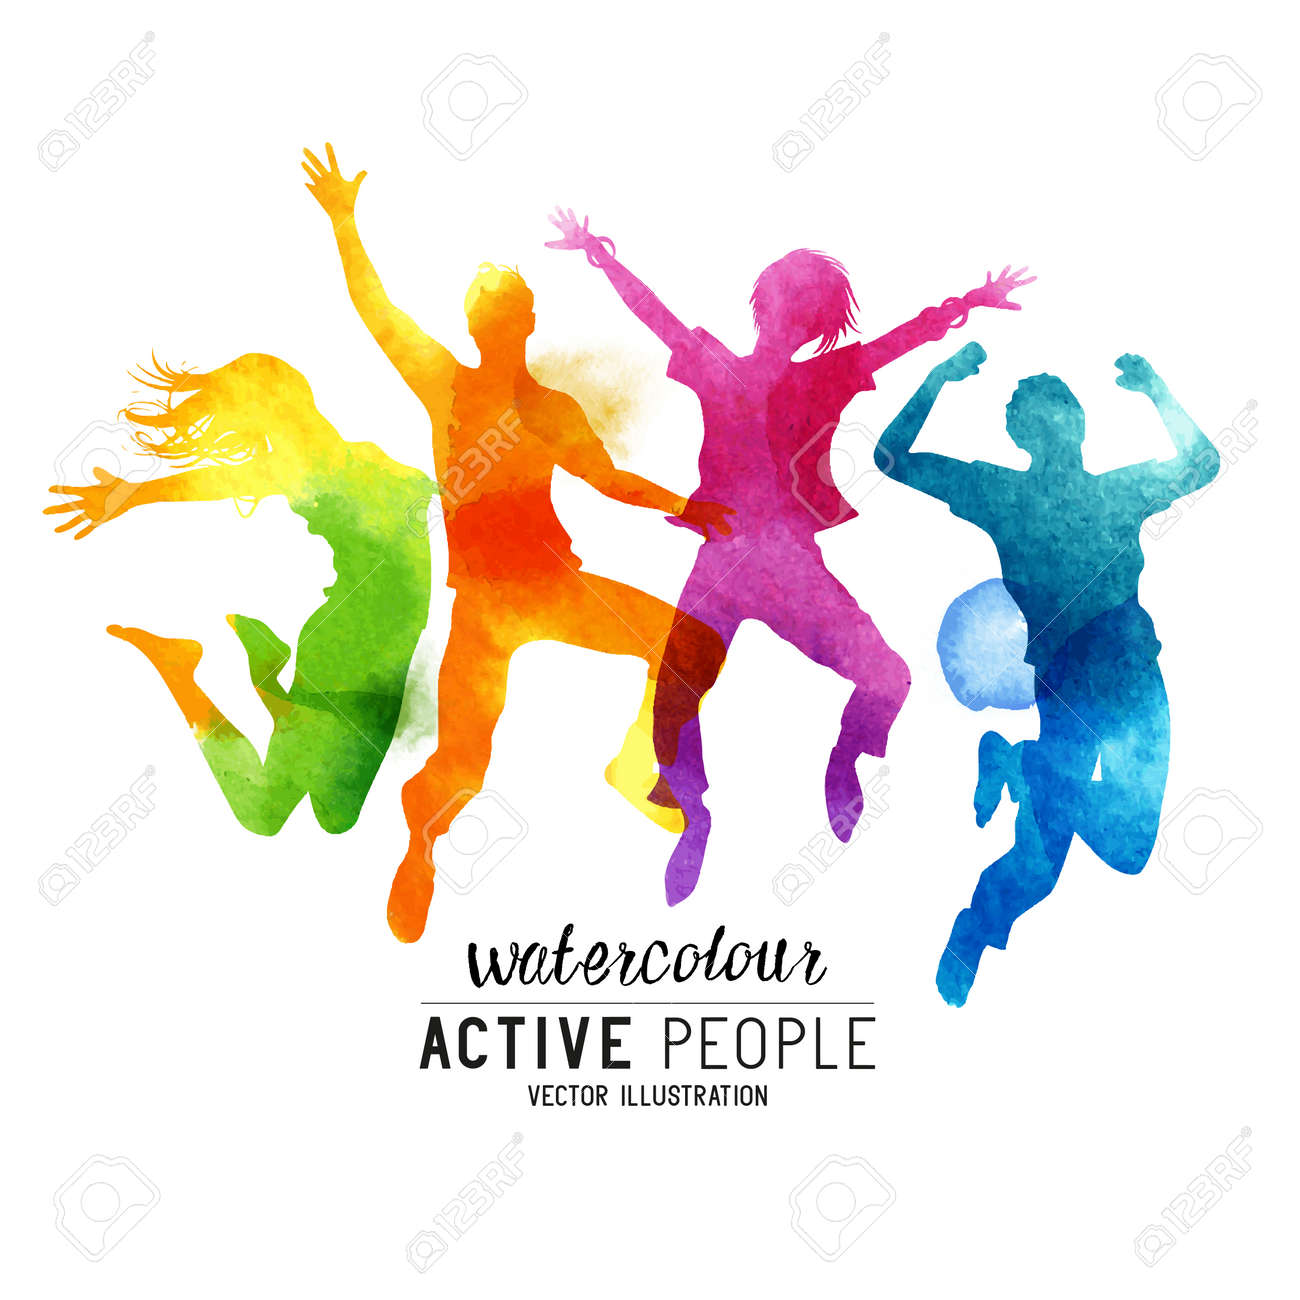 Watercolour Jumping People Vector. A group of freinds jumping into the air. Vector illustration. - 55683591